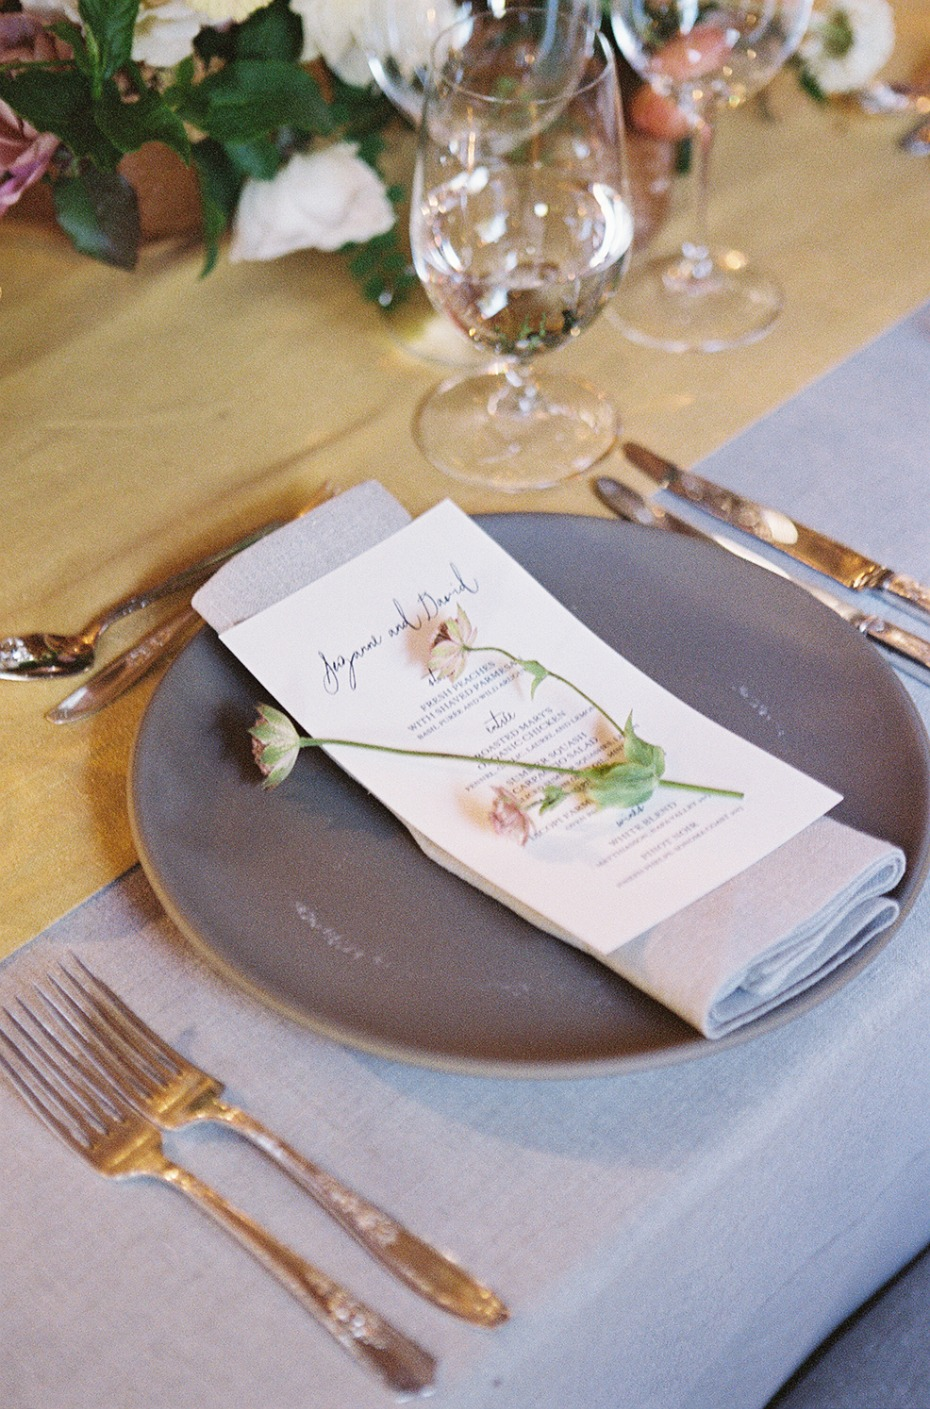 Simple place setting with flower